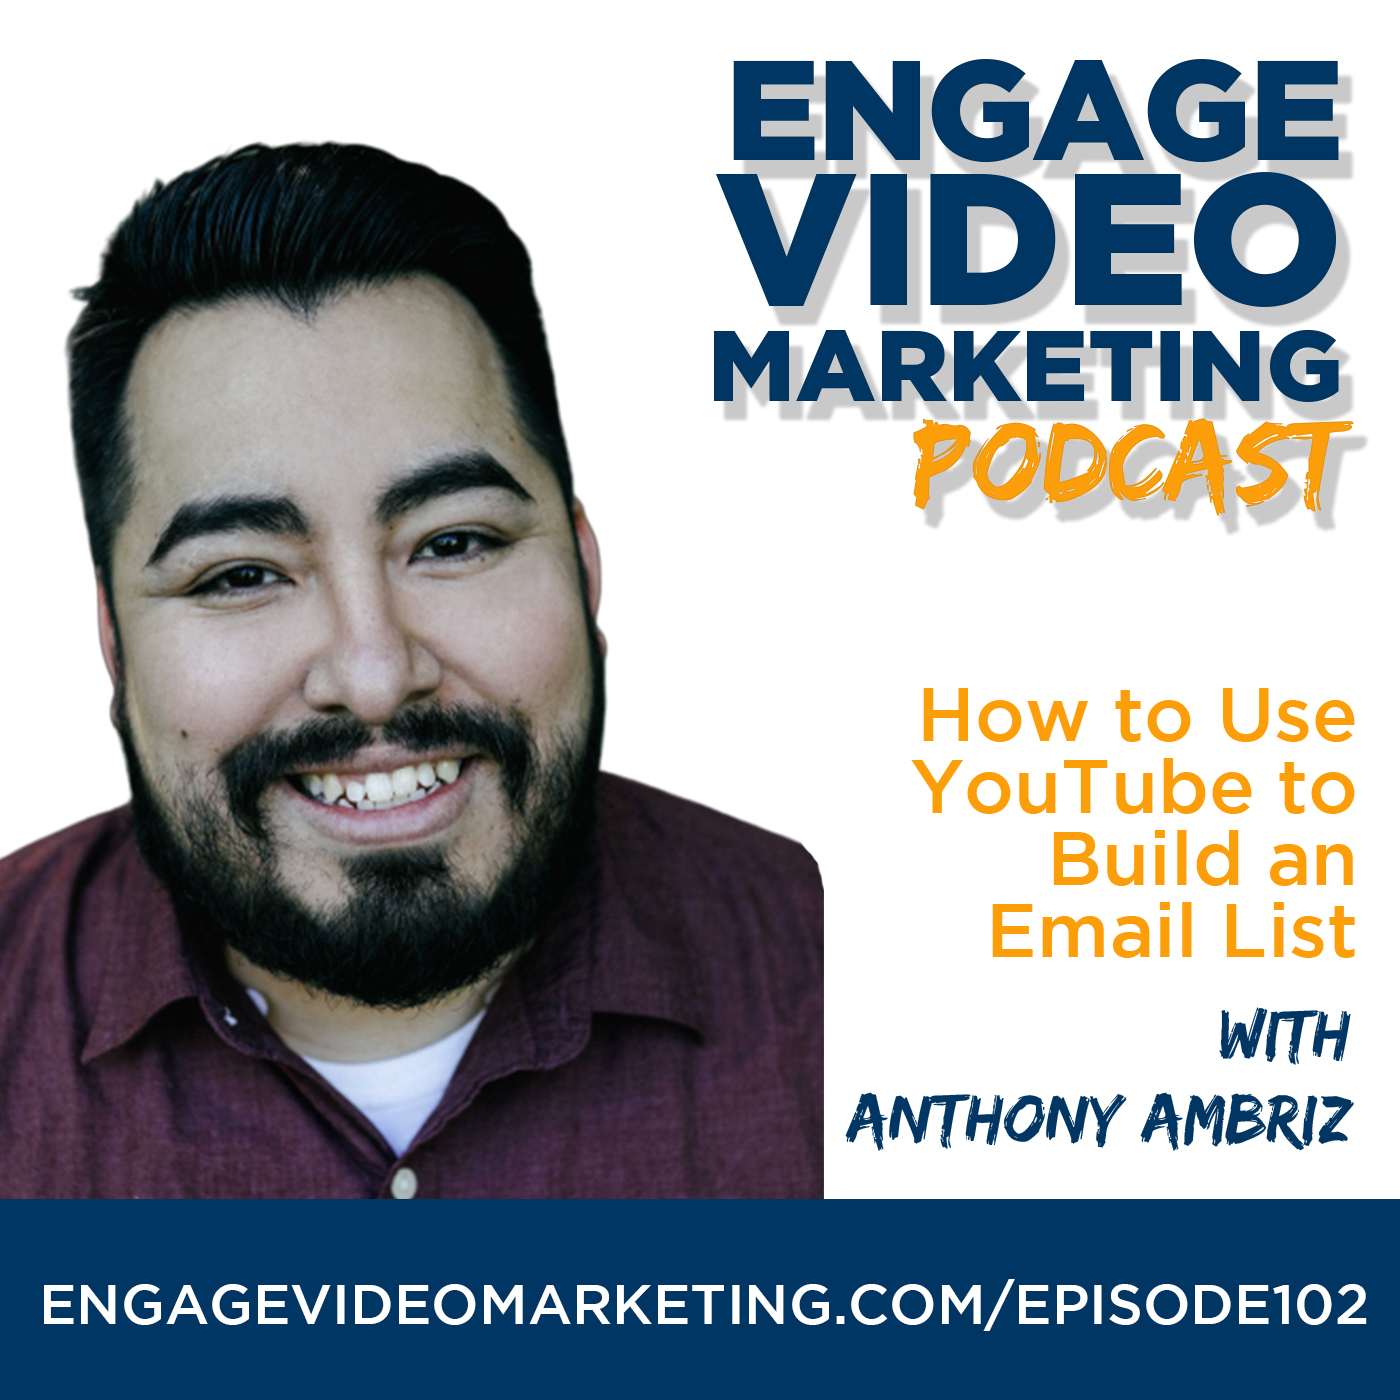 How to Use YouTube to Build an Email List with Anthony Ambriz